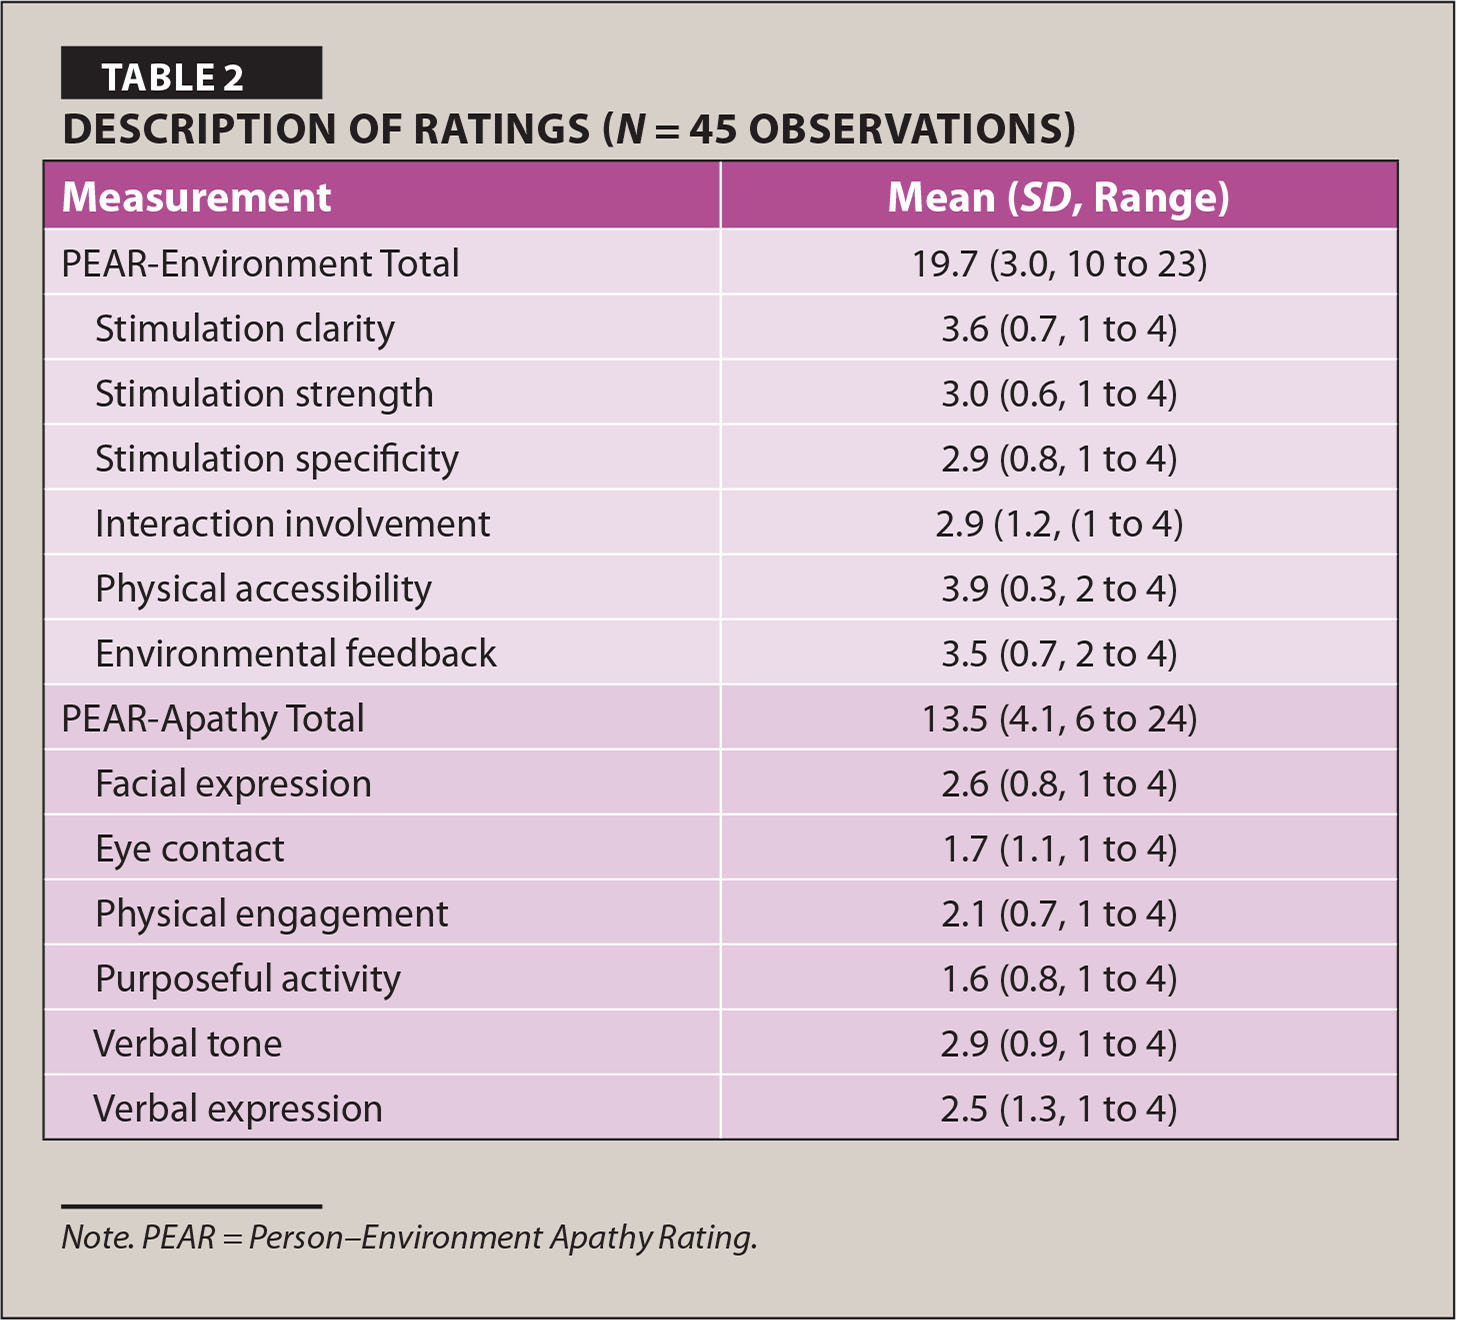 Description of Ratings (N = 45 Observations)